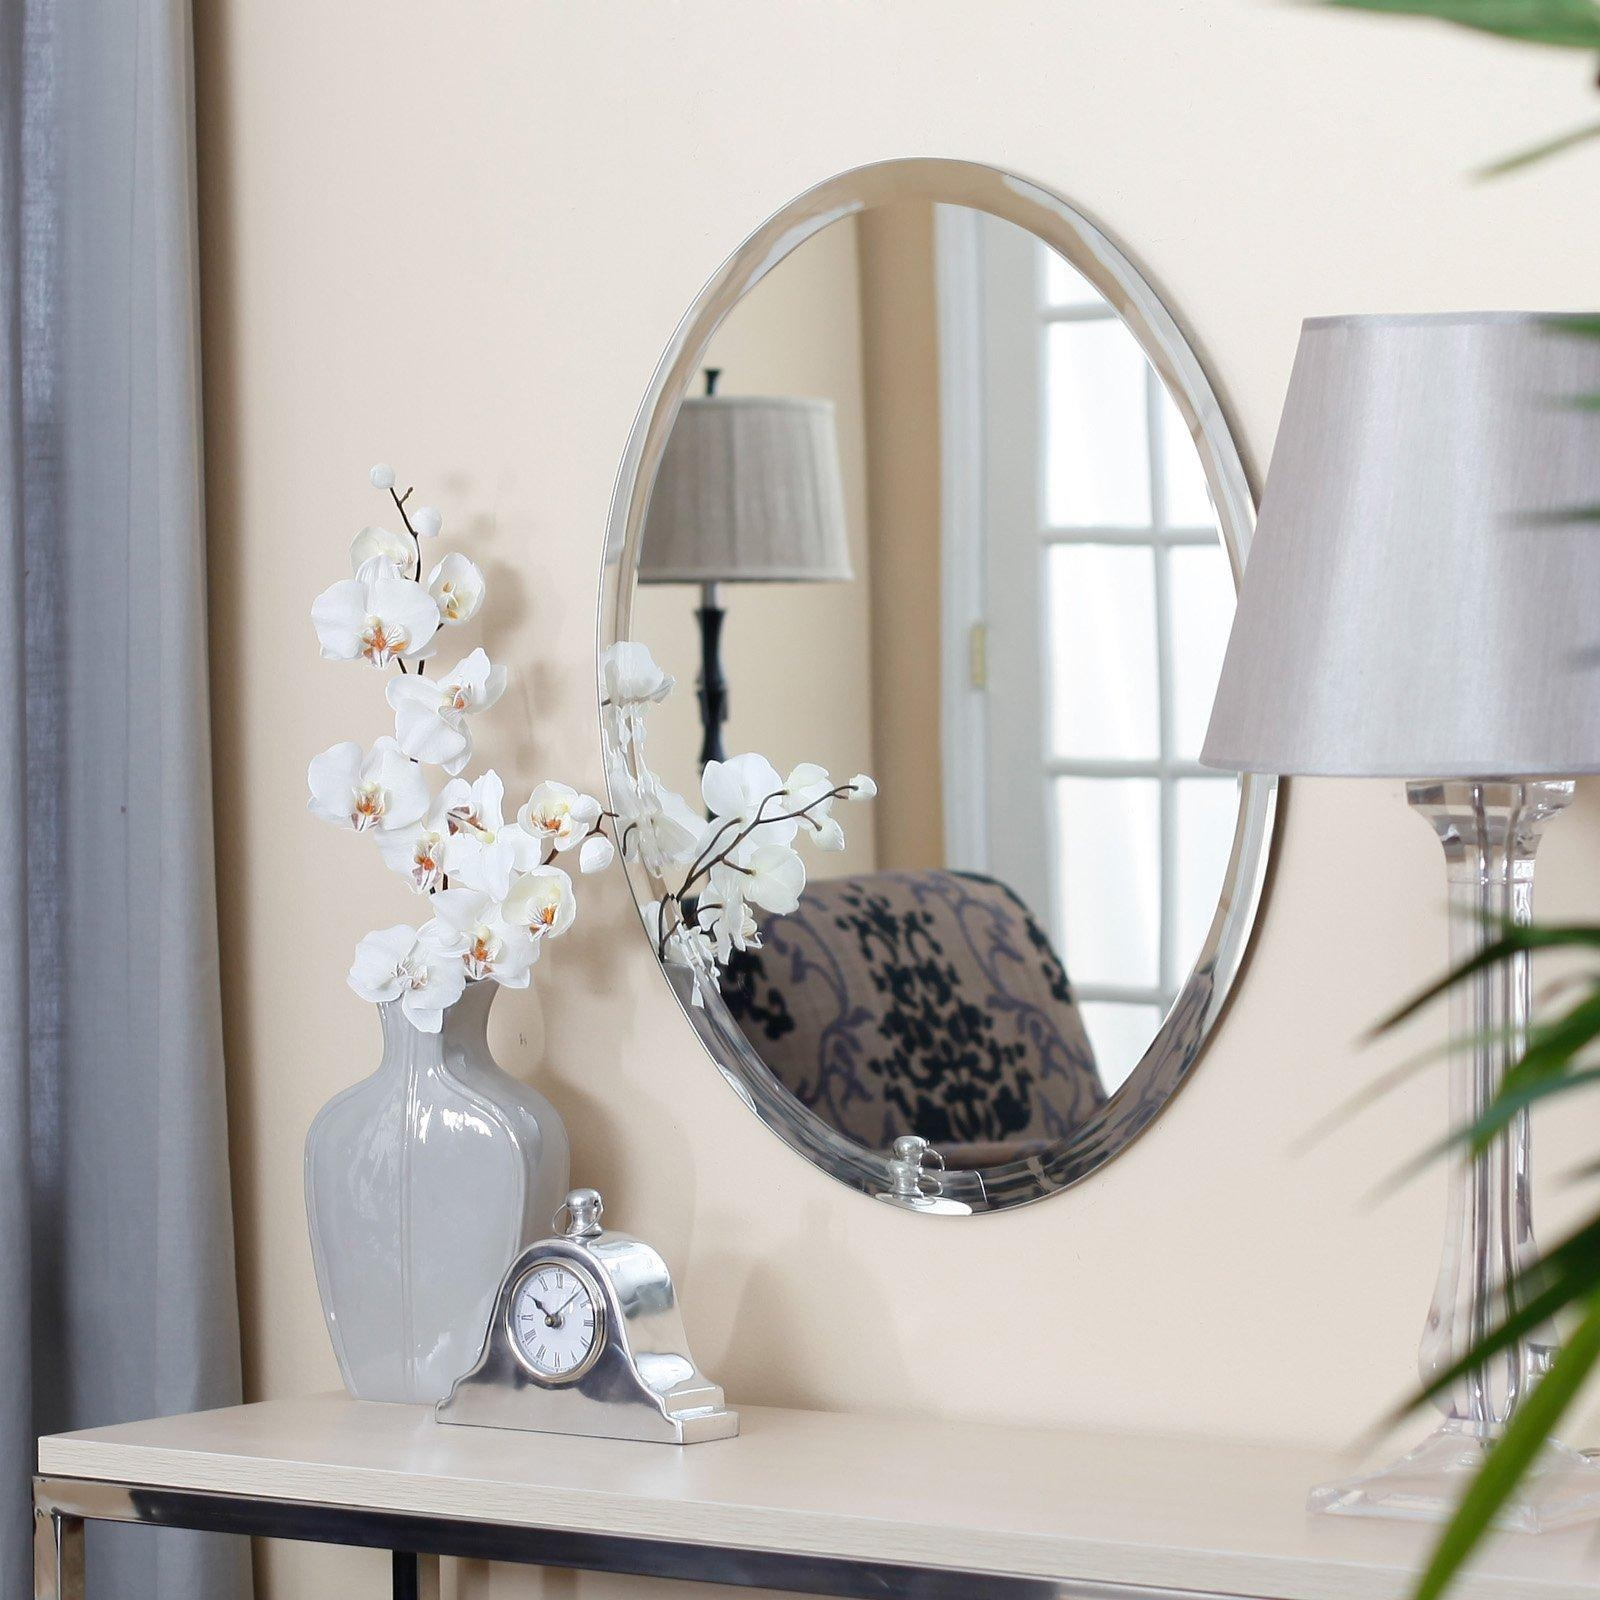 Uttermost Frameless Oval Beveled Vanity Mirror | Hayneedle In Frameless Beveled Bathroom Mirrors (Image 19 of 20)